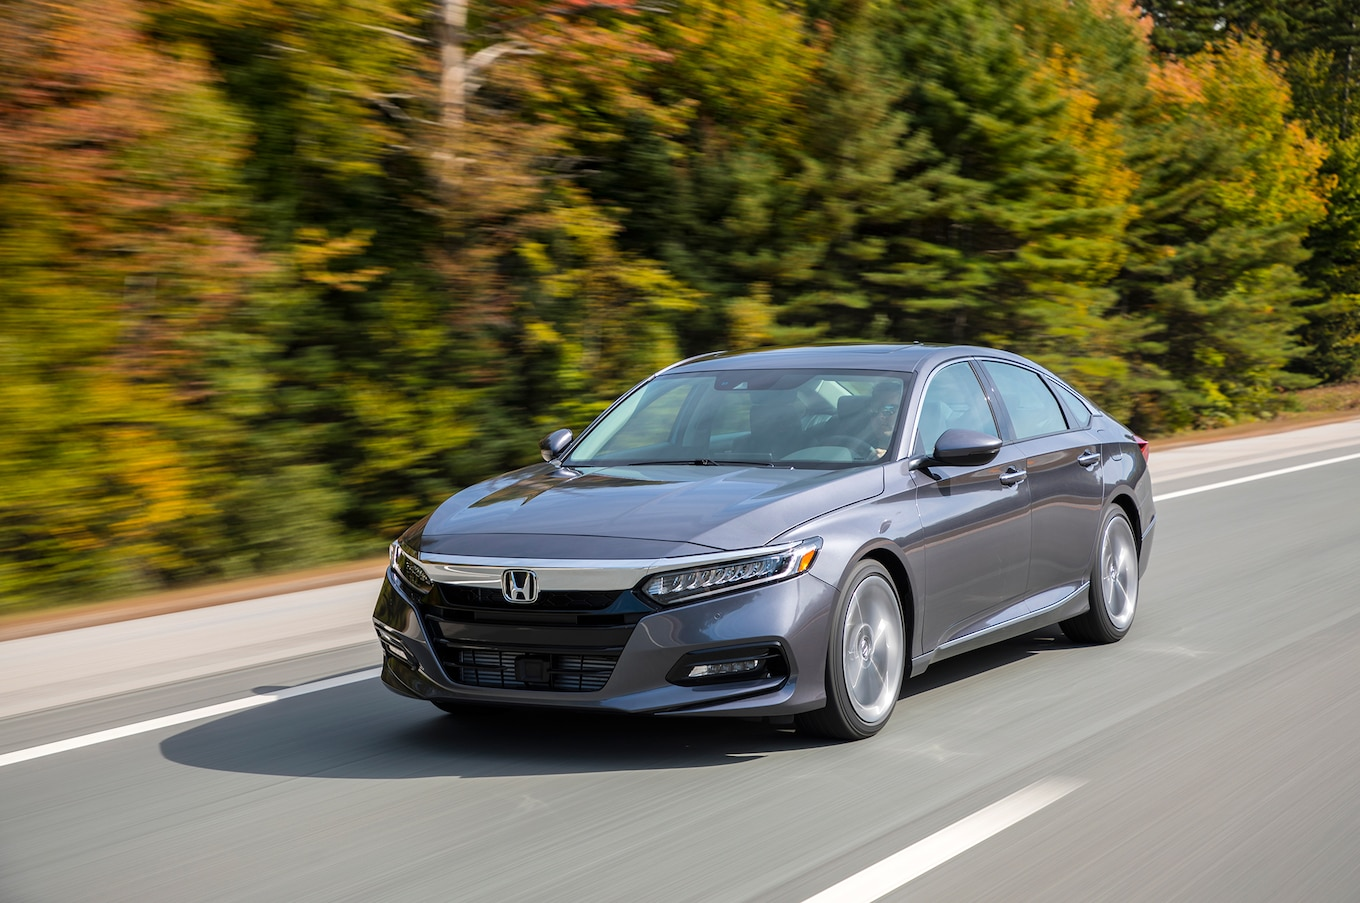 2018 Honda Accord Touring 2.0T Front Three-Quarter Wallpapers #56 of 107